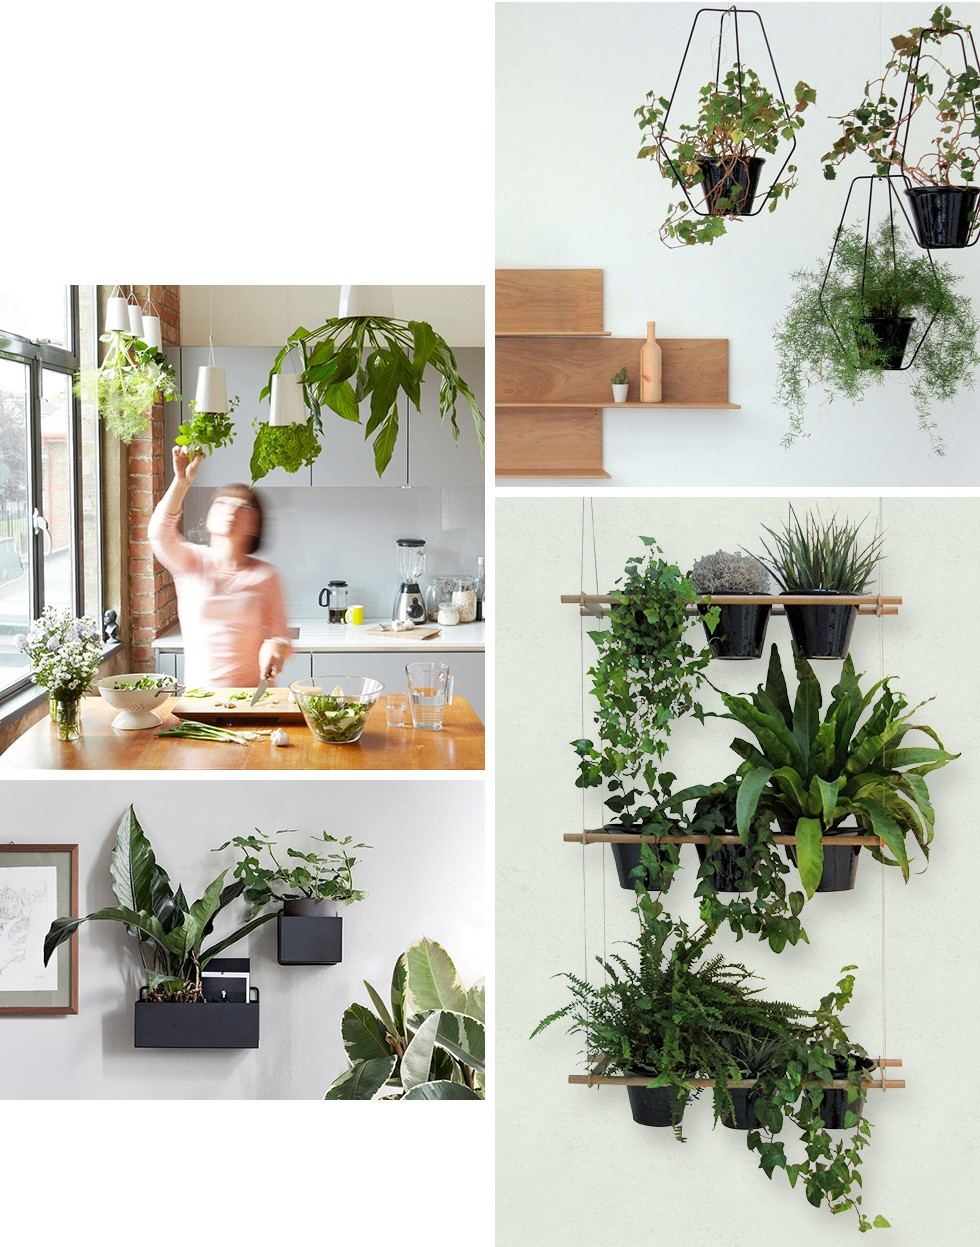 Sky Planter by Boskke / Etcetera Planter by Compagnie / Wall box by Ferm Living